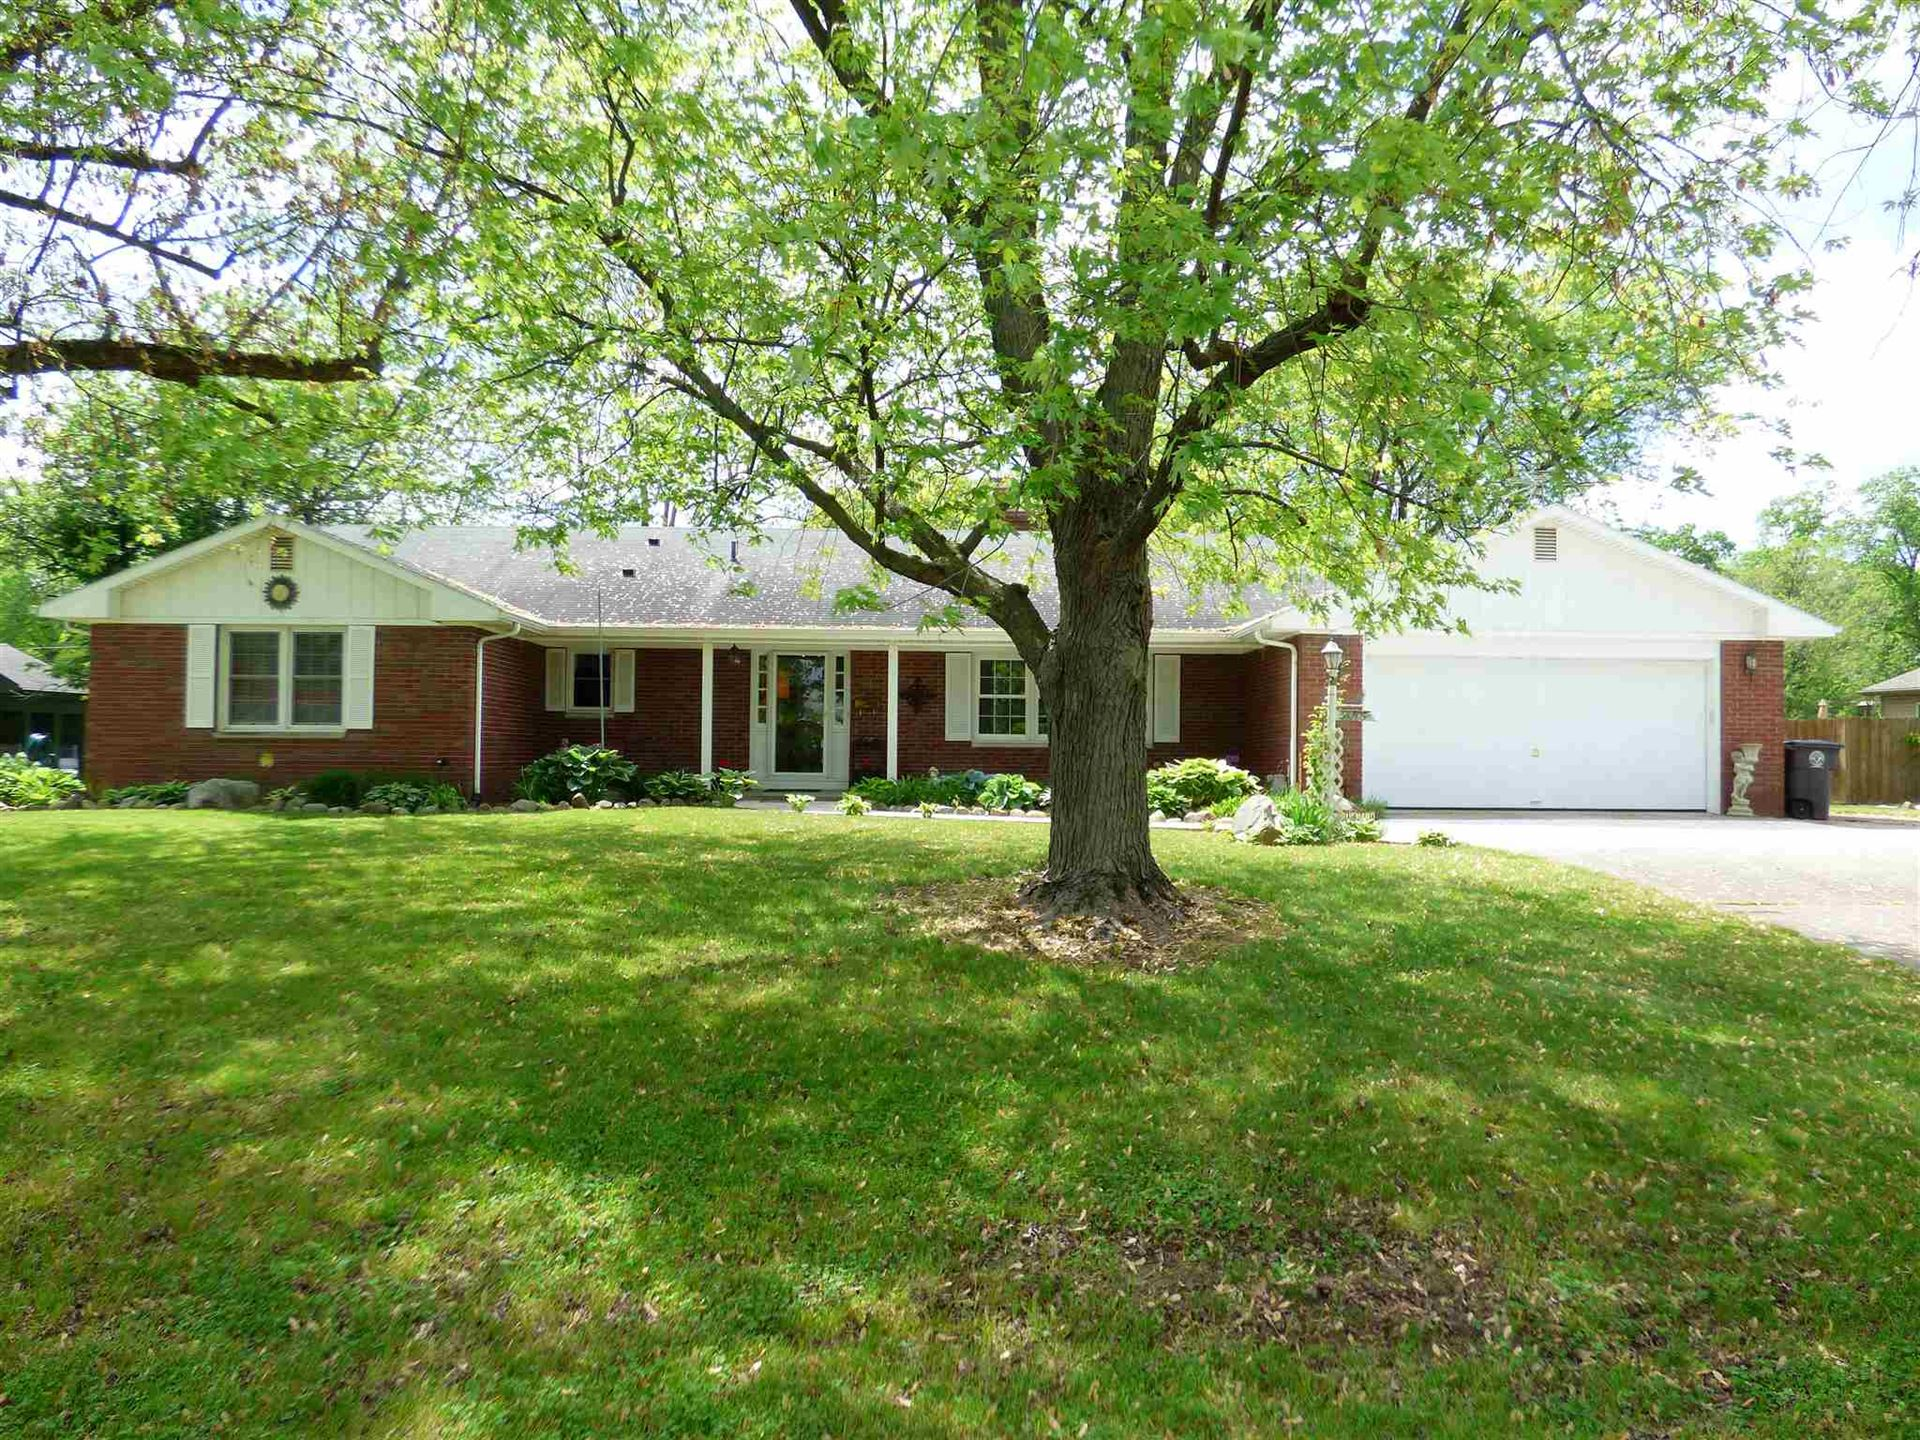 3015 Kingsley Drive, Fort Wayne, IN 46815 - #: 202019384